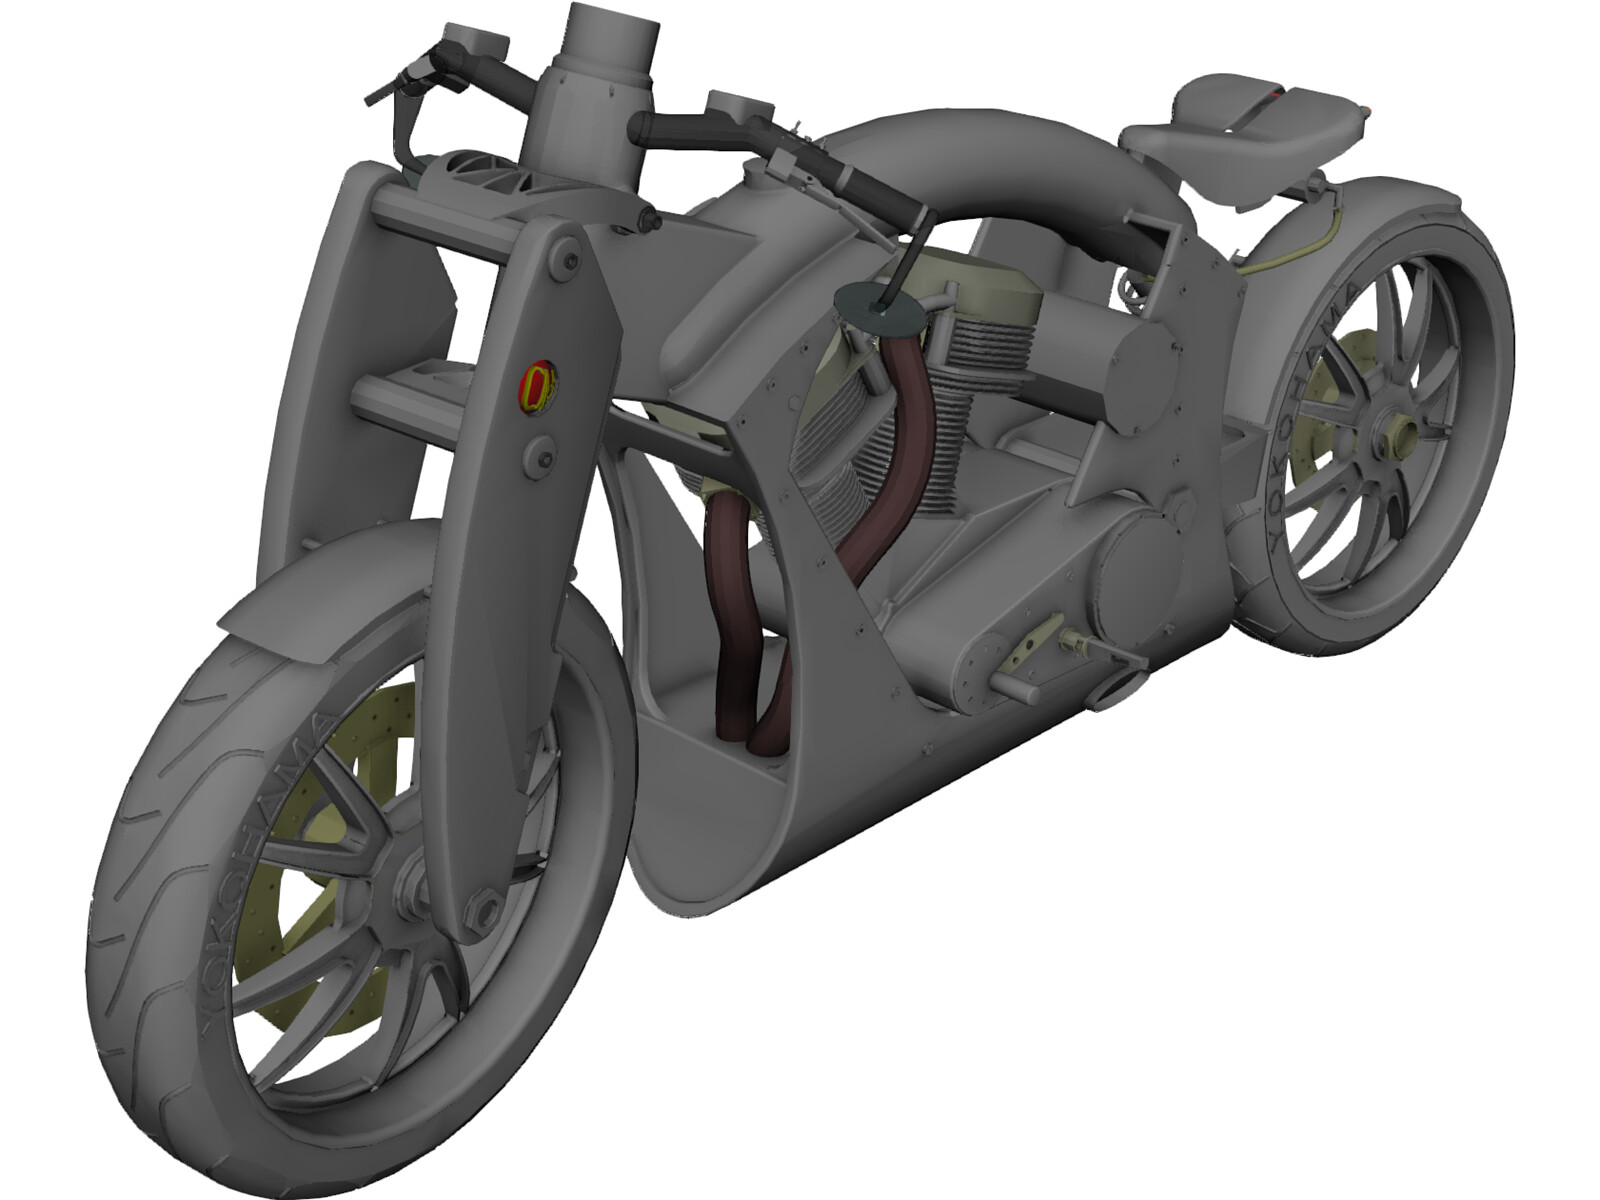 Motorcycle Yokohama 3d Cad Model Download 3d Cad Browser